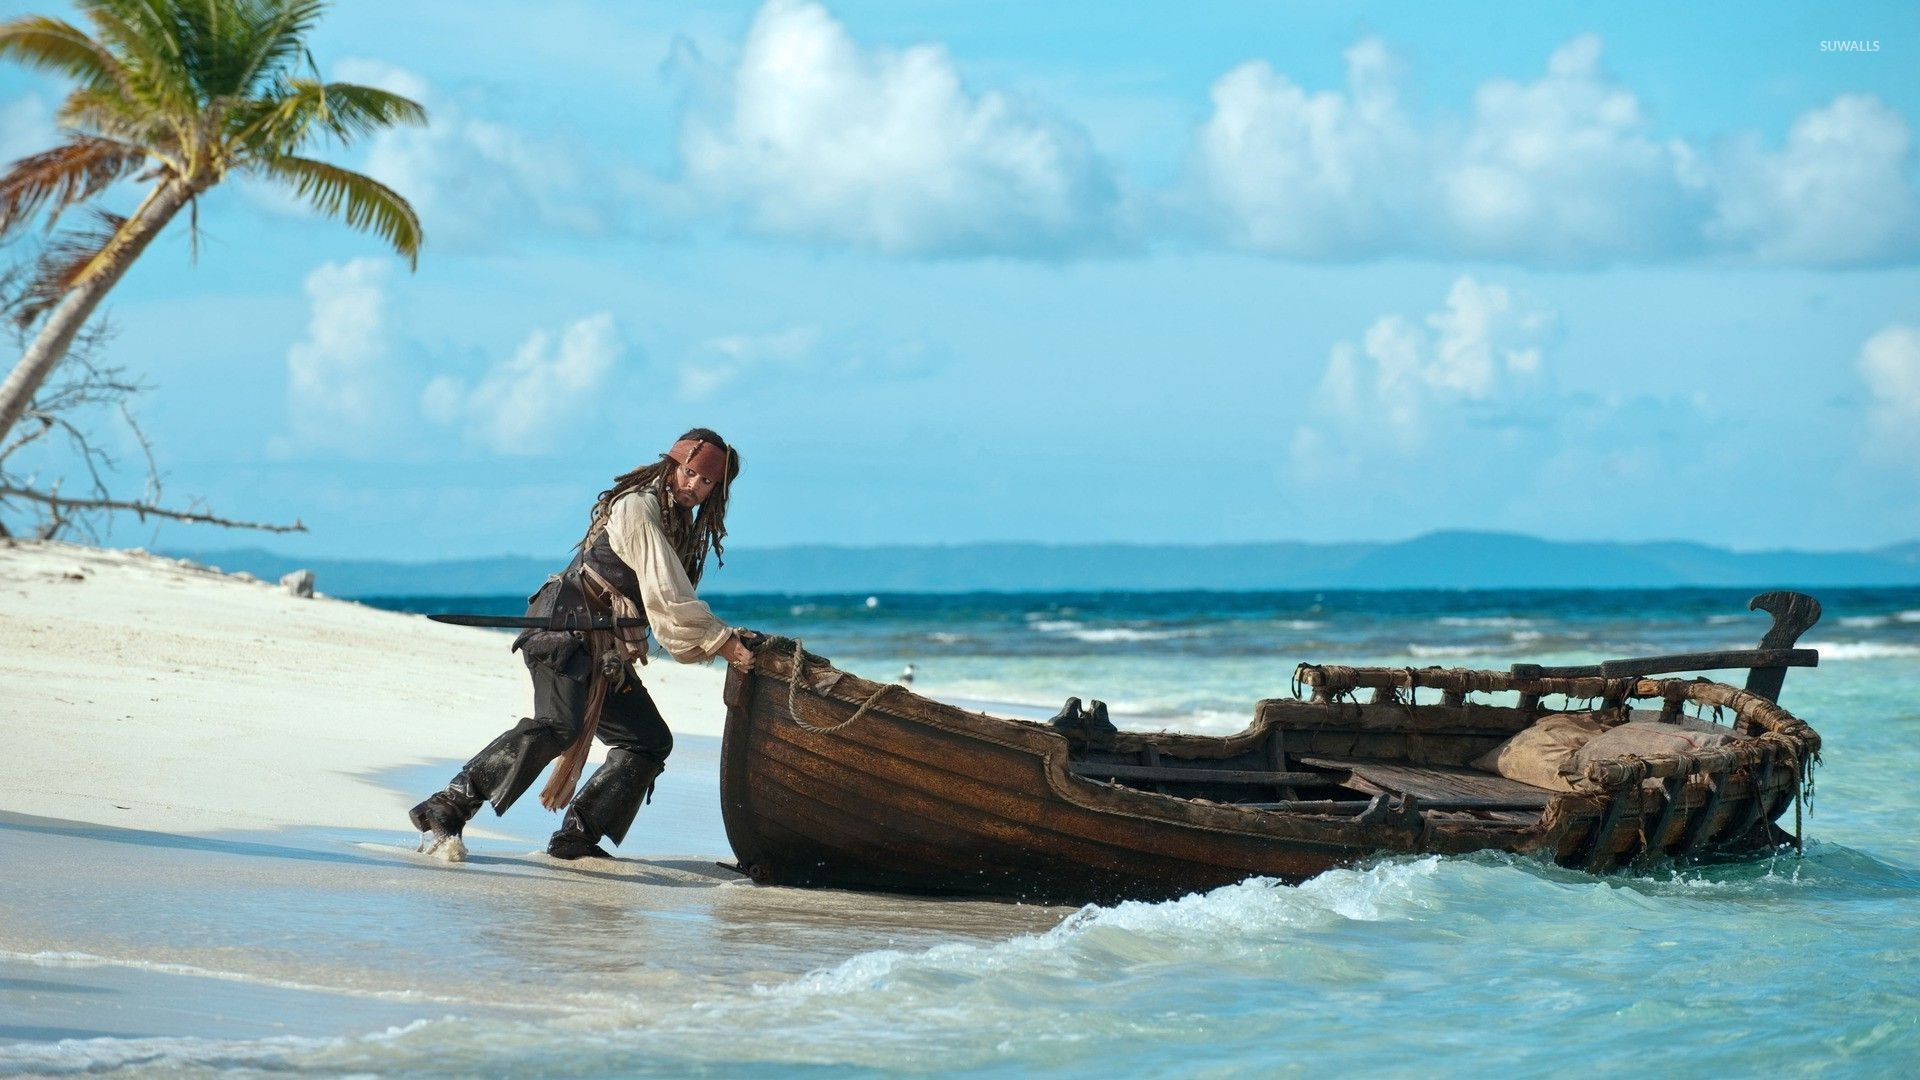 Pirates Of The Caribean Wallpaper: Caribbean Wallpaper Widescreen (61+ Images